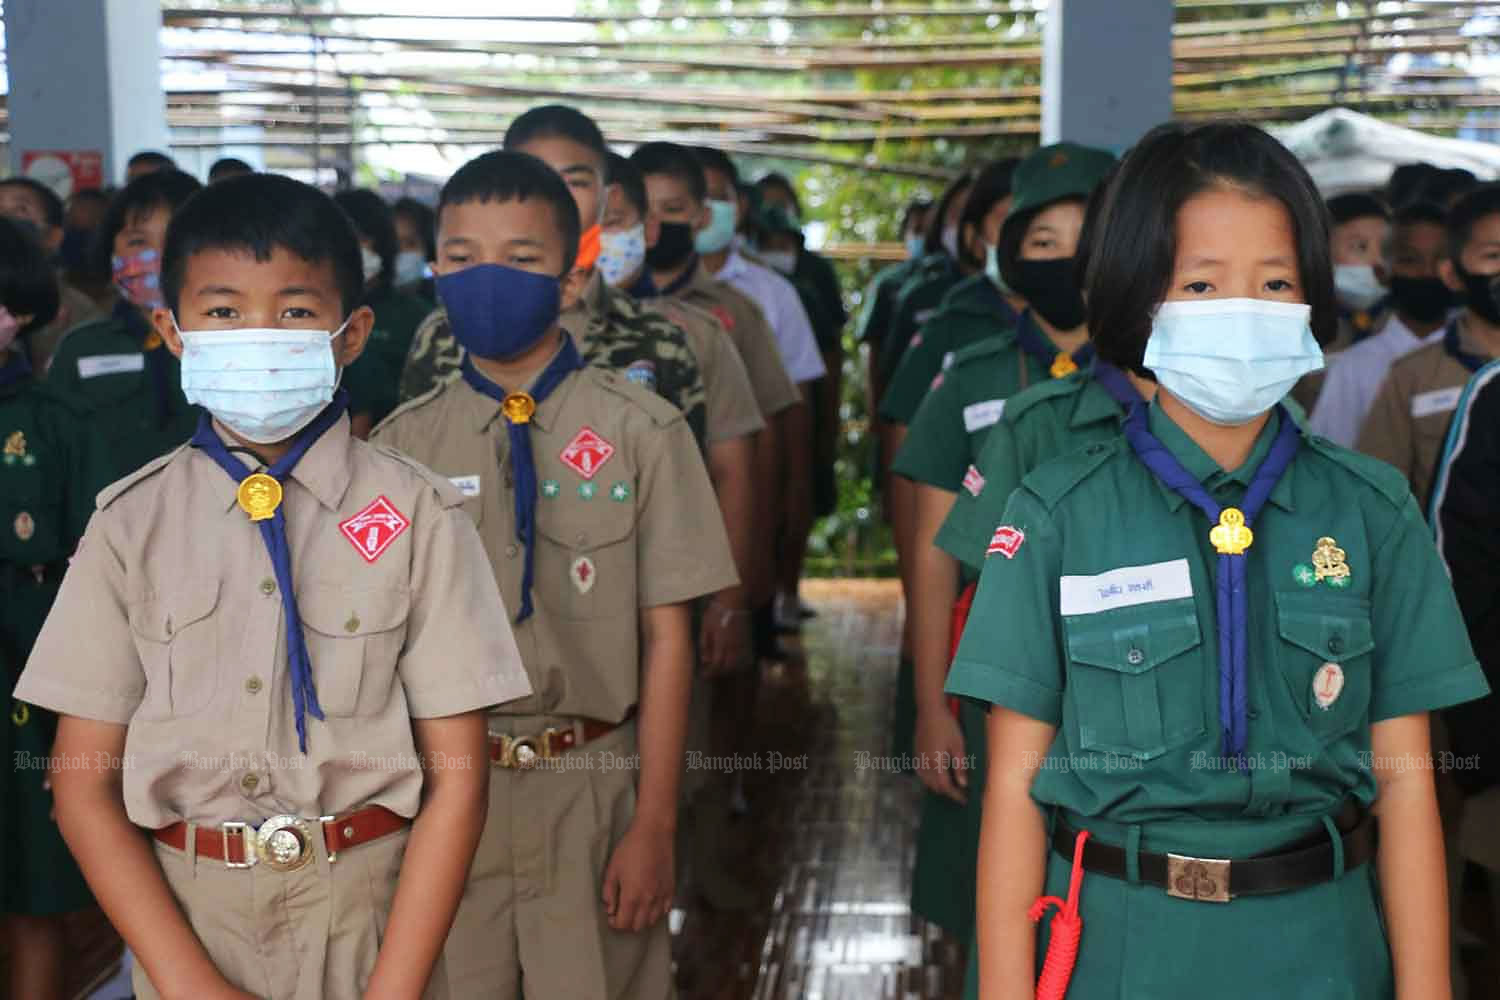 Students at Anuban Sangkhla Buri School in Kanchanaburi's Sangkhla Buri district gather at assembly on Wednesday. The school in this border district next to Myanmar imposes strict measures to curb the Covid-19 pandemic. (Photo by Piyarat Chongcharoen)